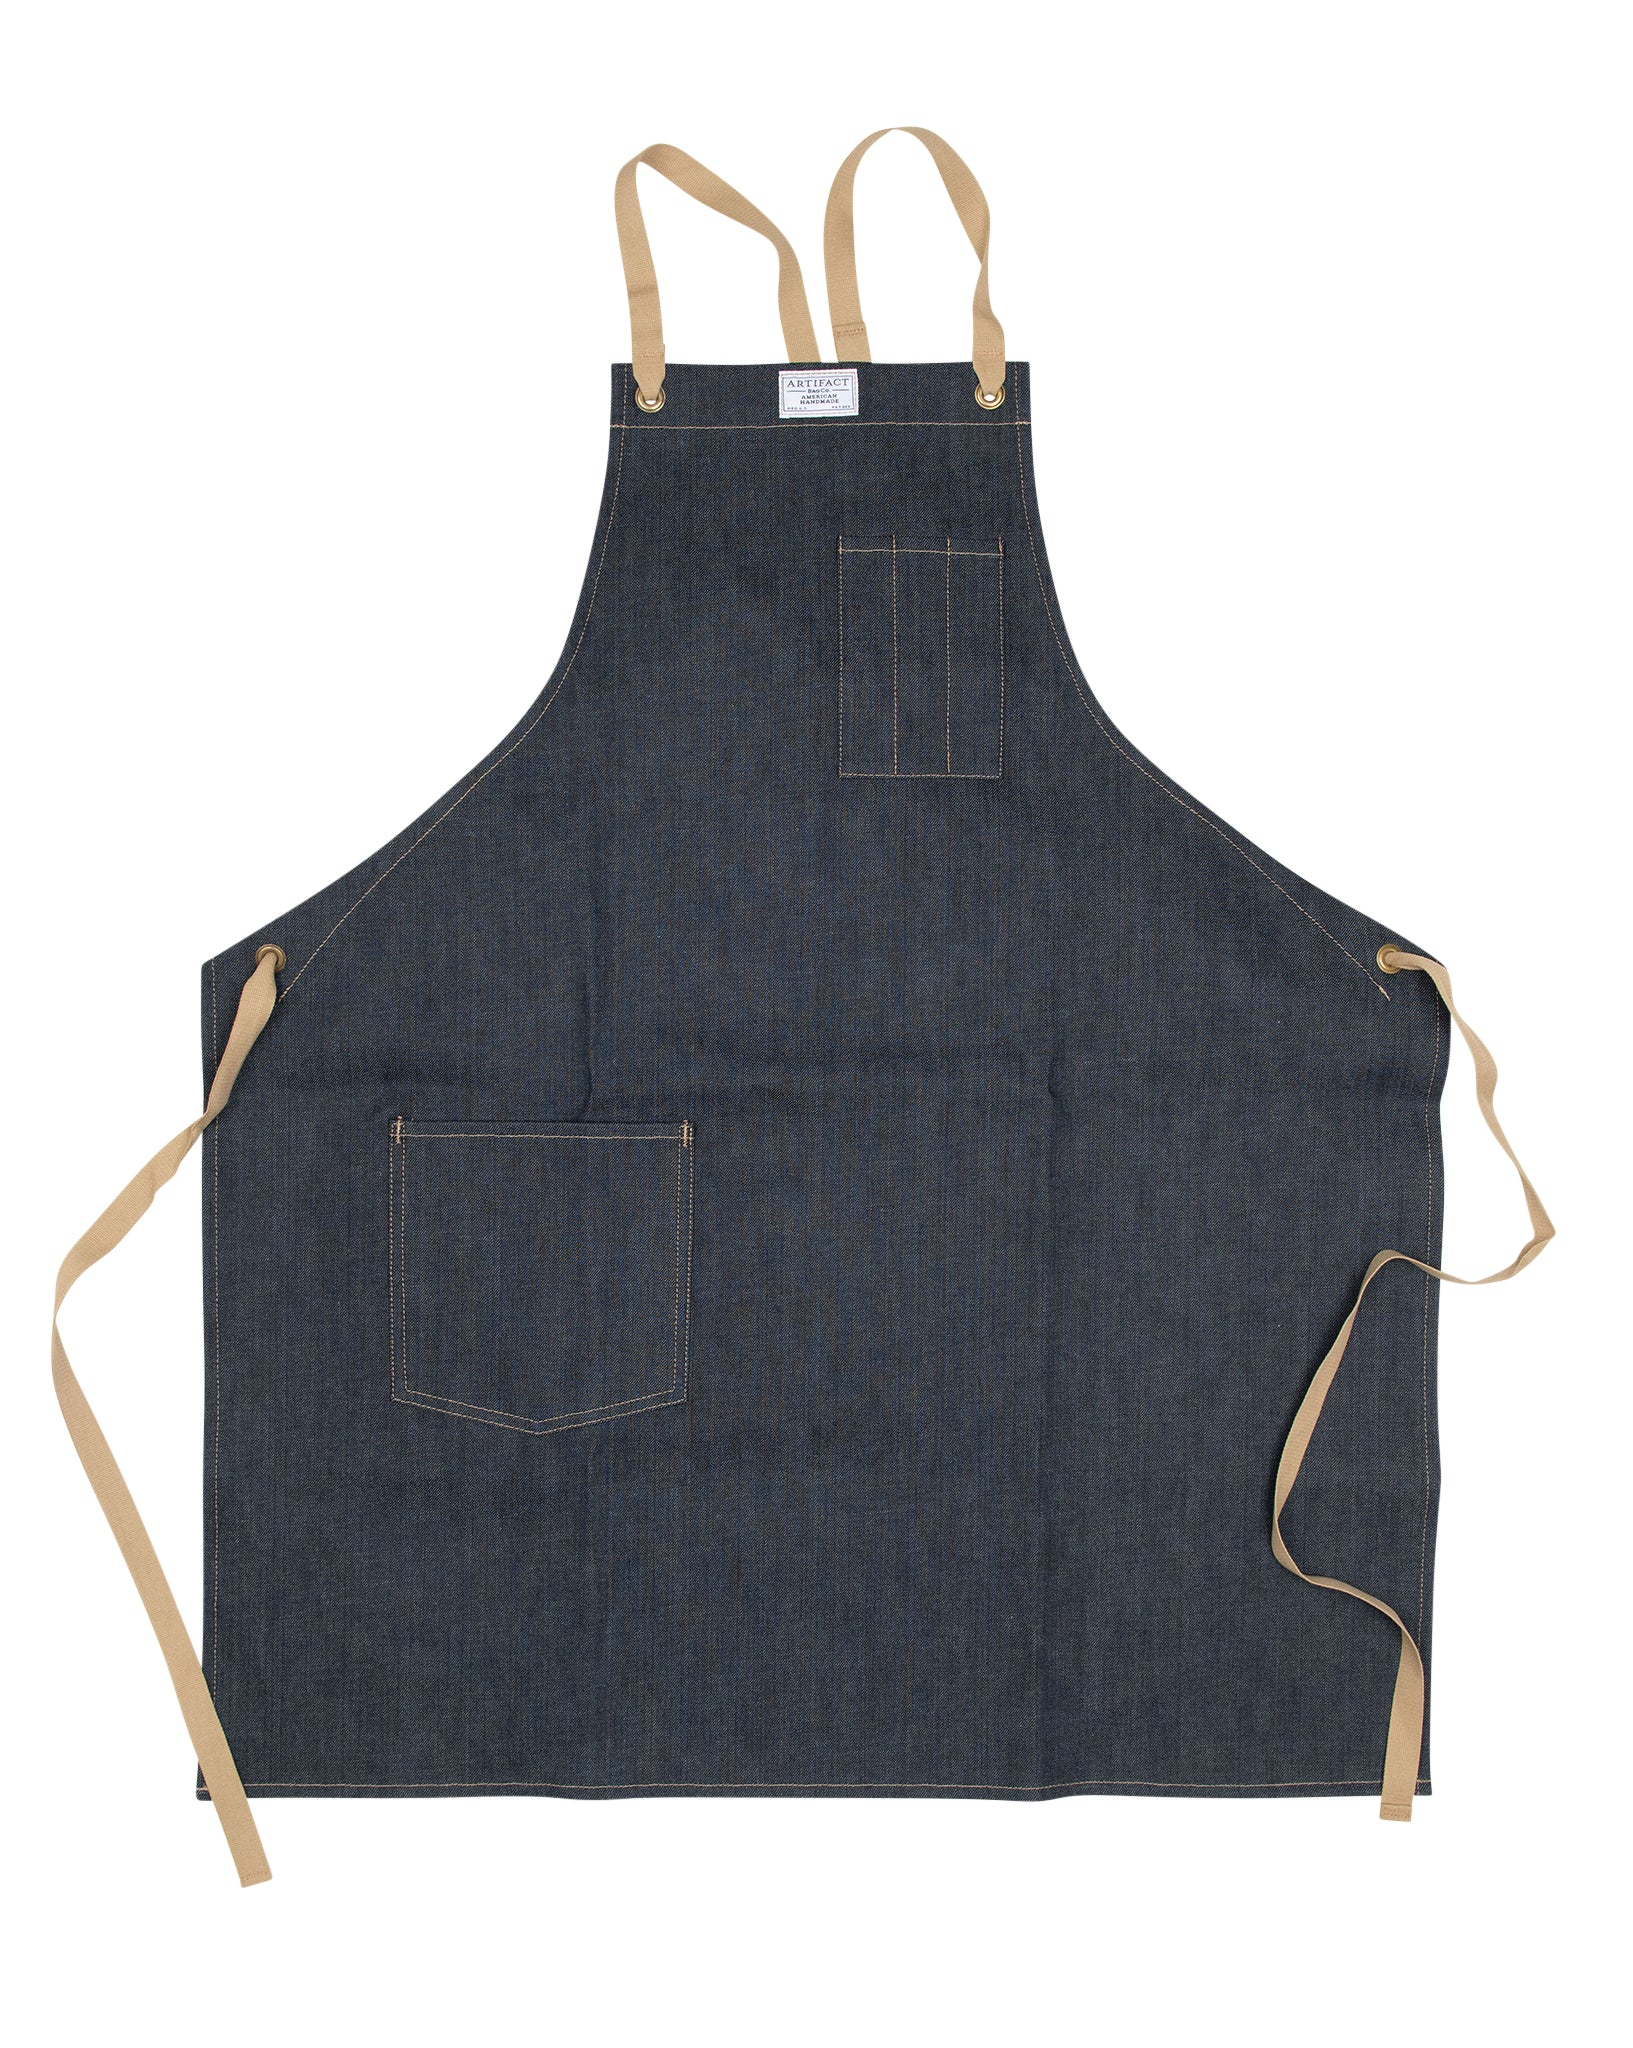 Kurabo Denim Apron w/ Cotton Cross-Back Ties 1